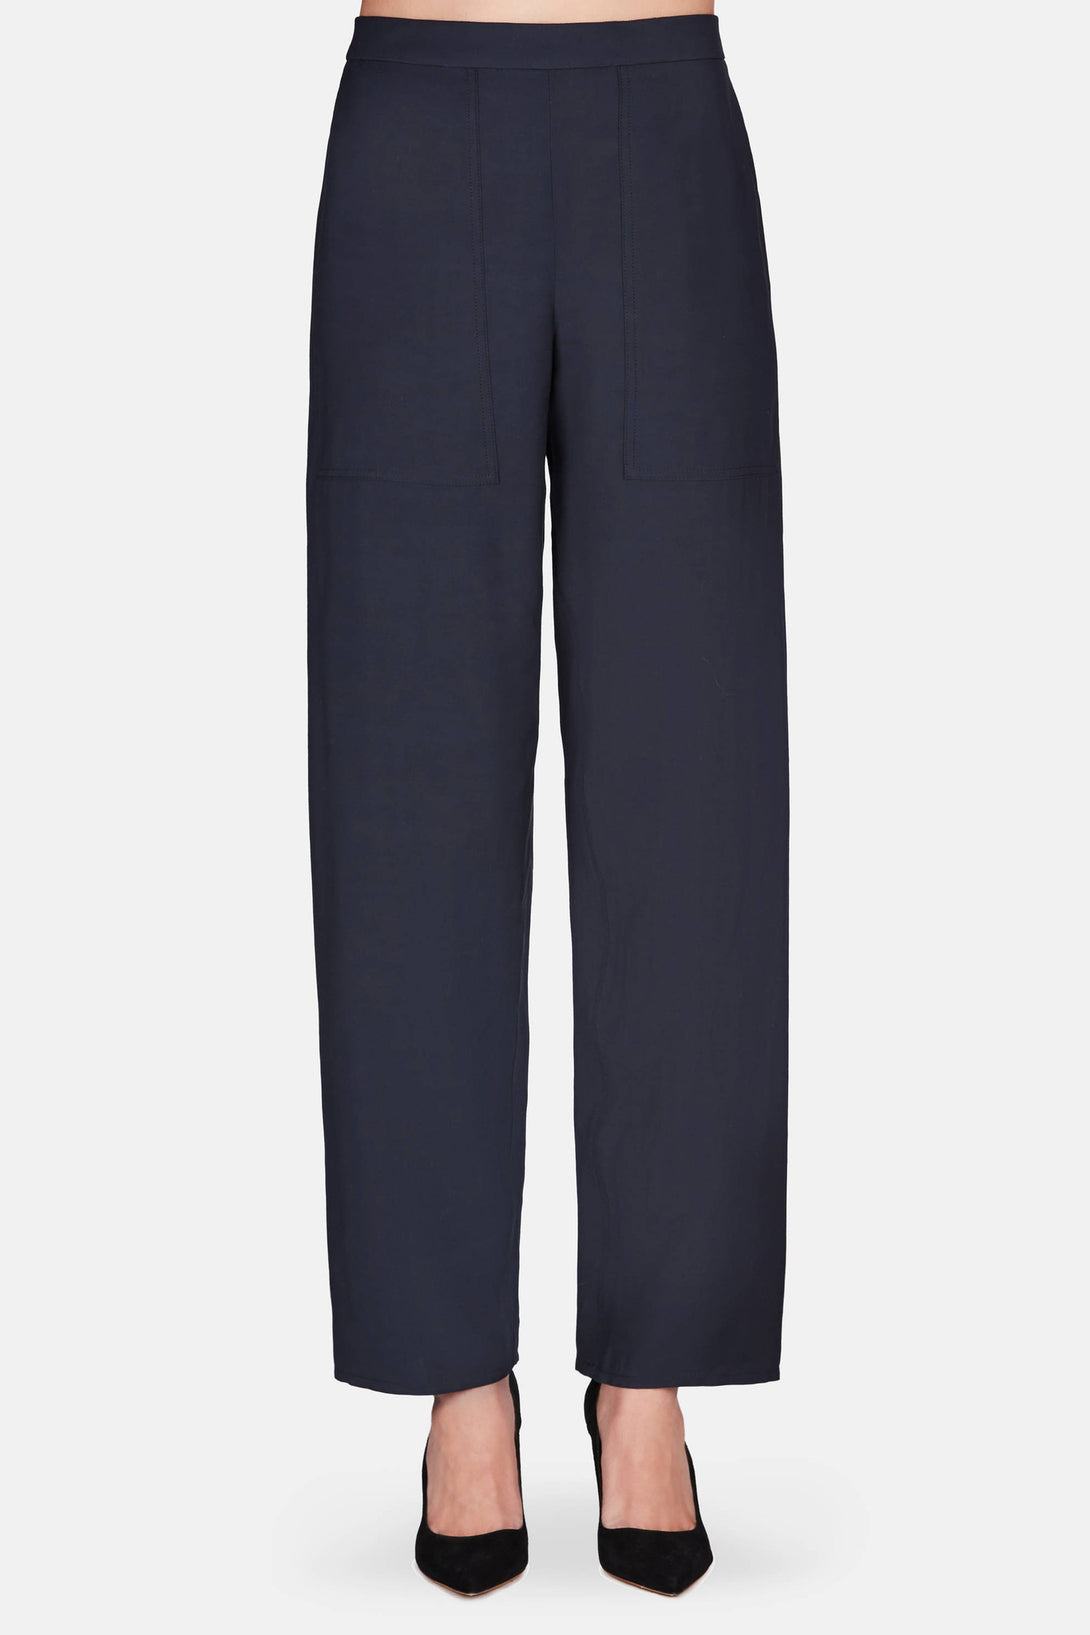 Pull On Elasticated Pants - Midnight Blue